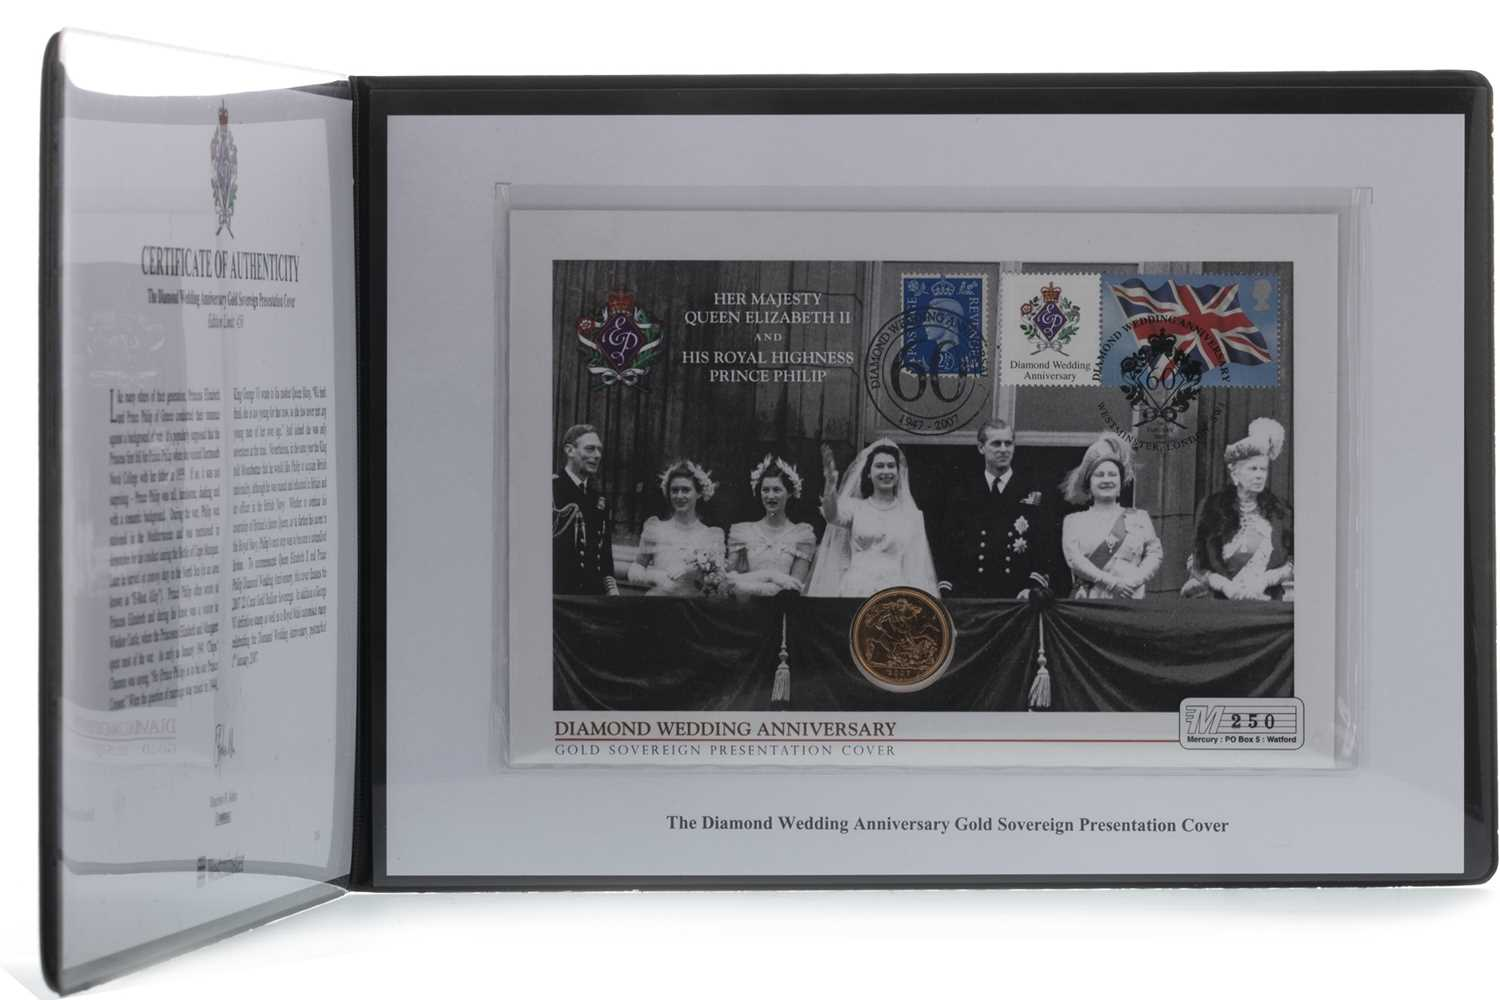 Lot 15-THE DIAMOND WEDDING ANNIVERSARY GOLD SOVEREIGN PRESENTATION COVER